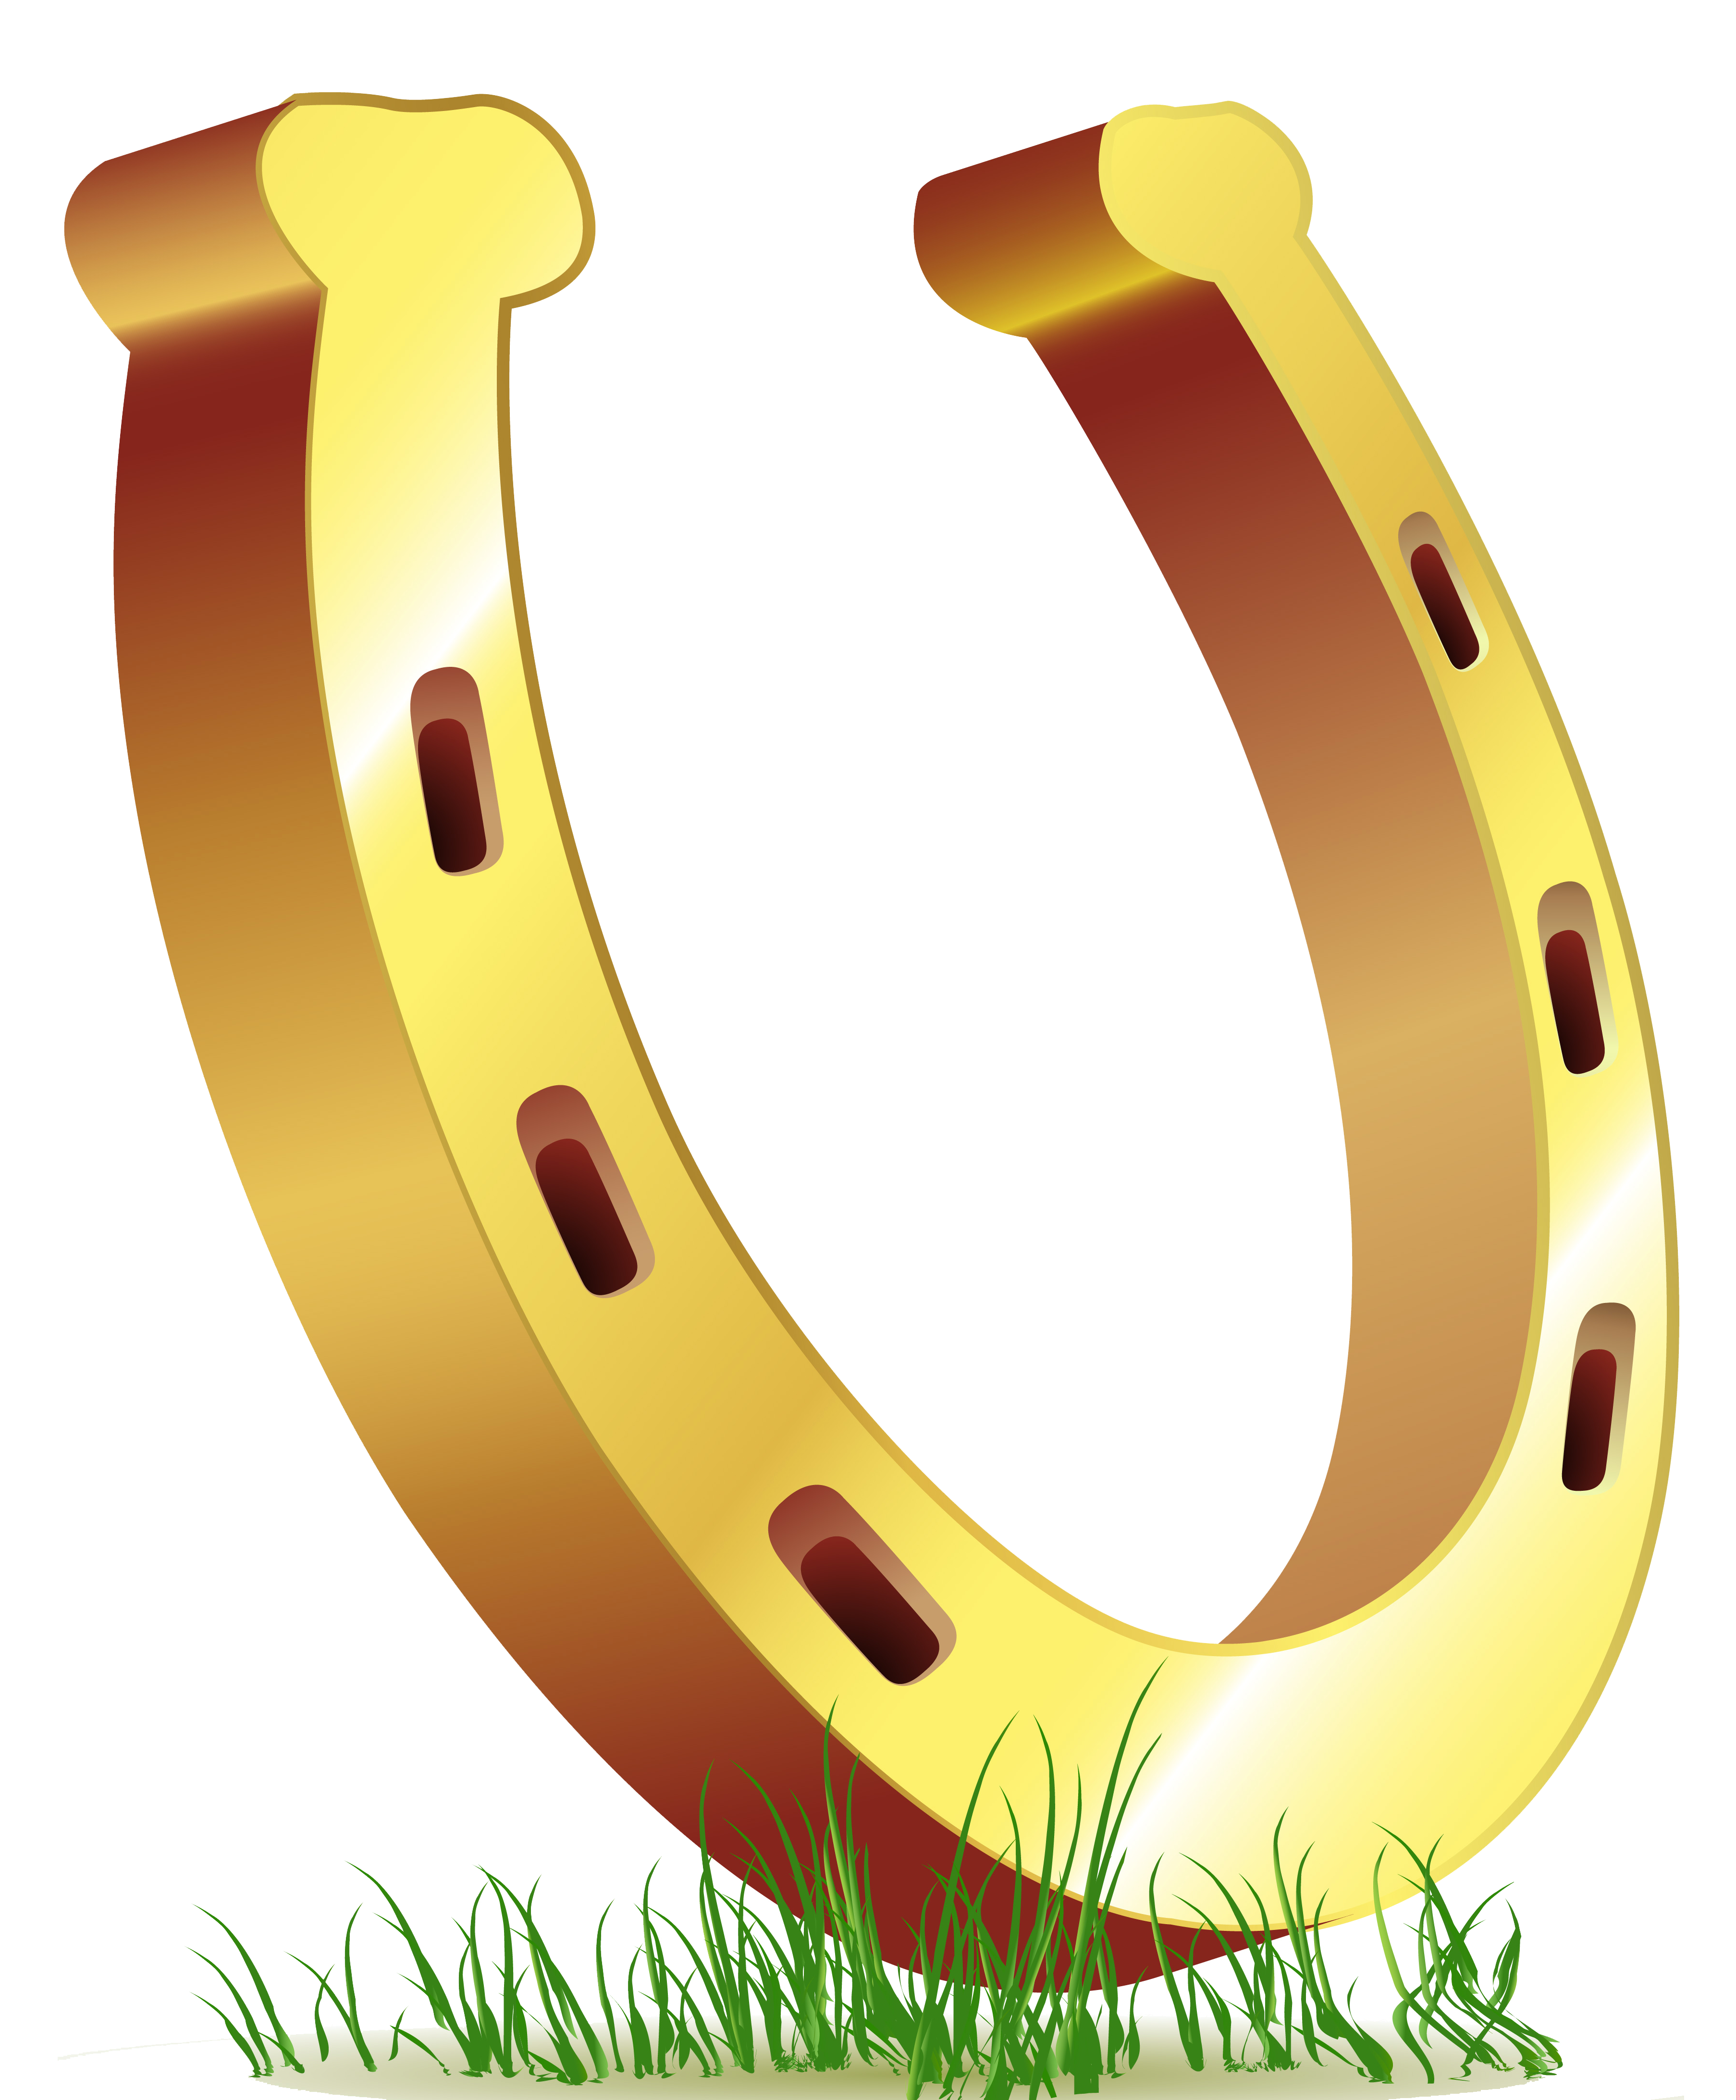 Horseshoe clipart. St patricks day png